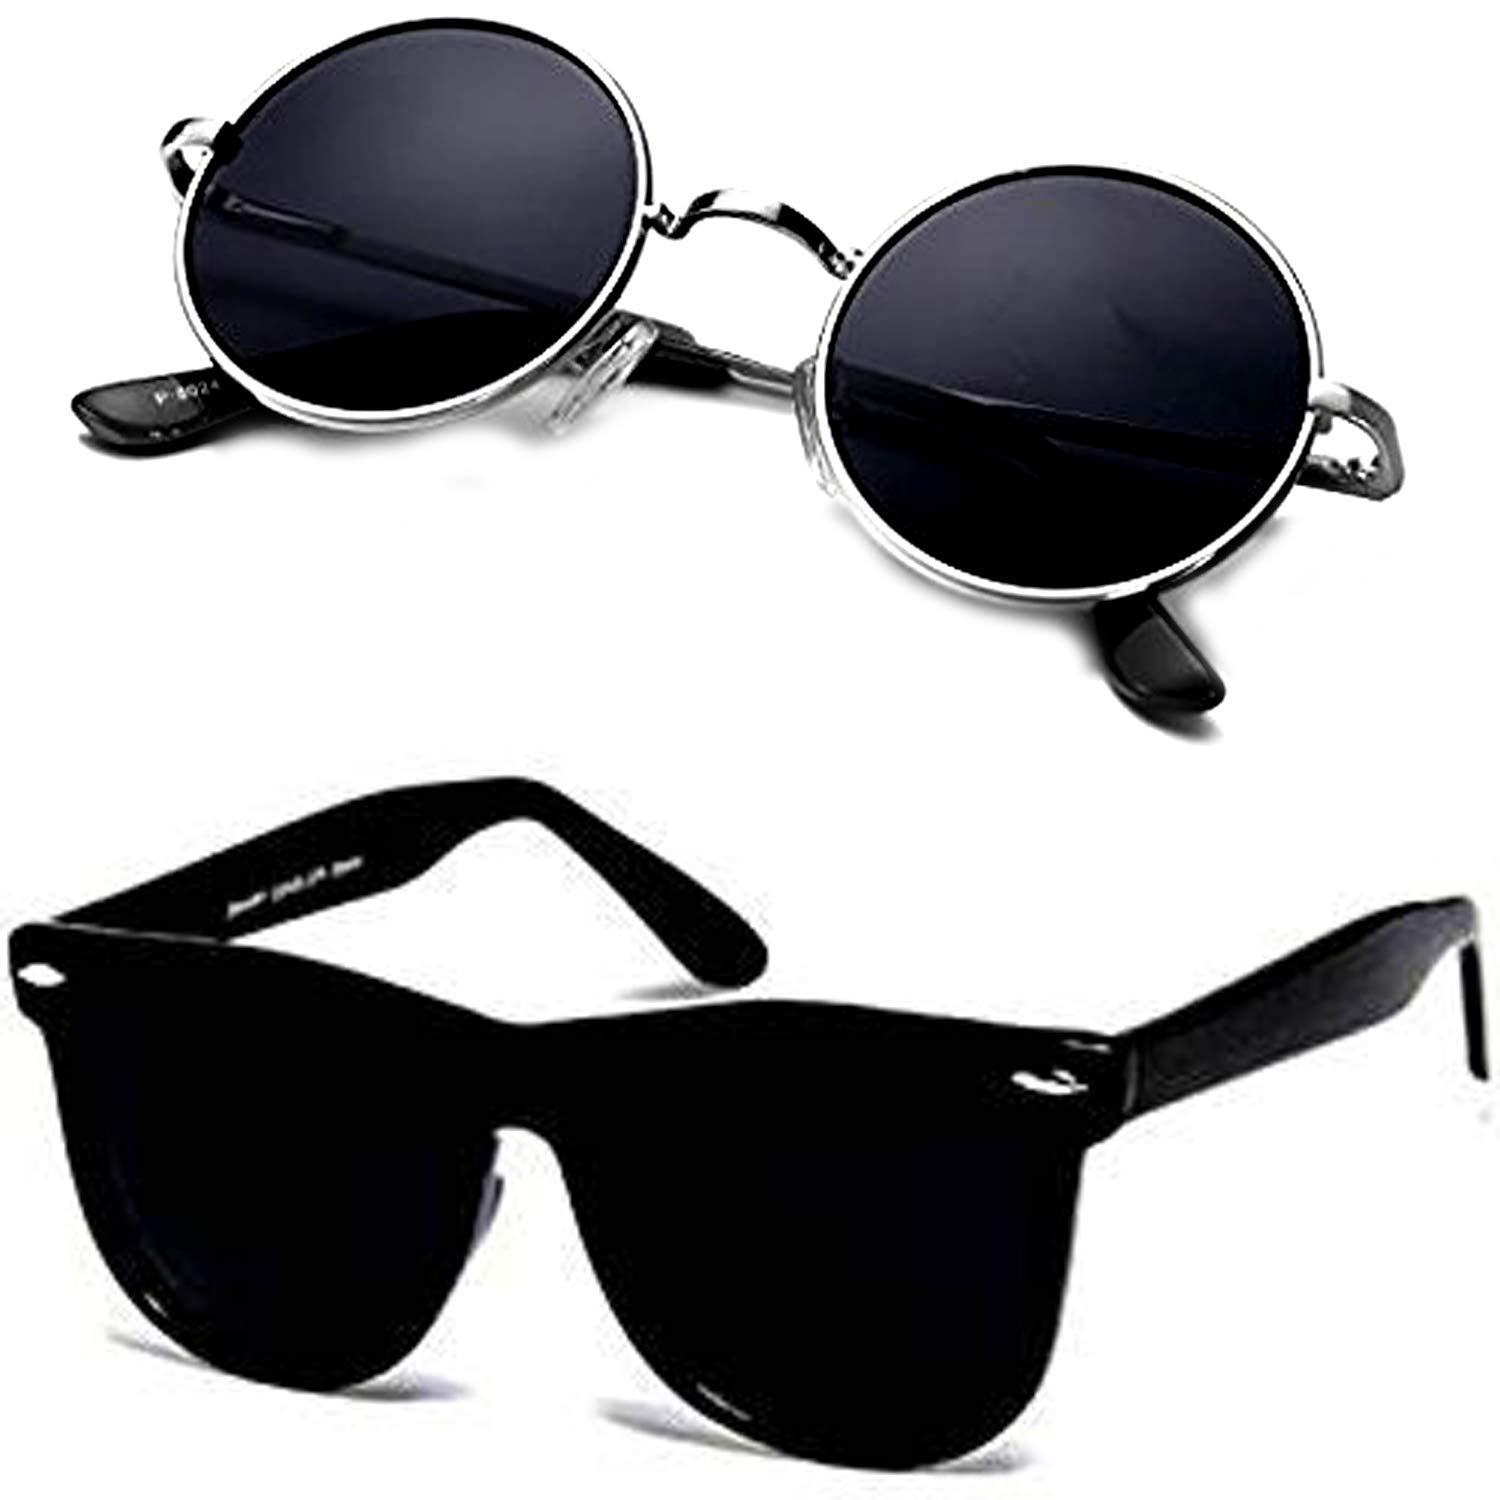 Buy Ivonne new Collection Men's Sunglasses Black pack 2 at Amazon.in